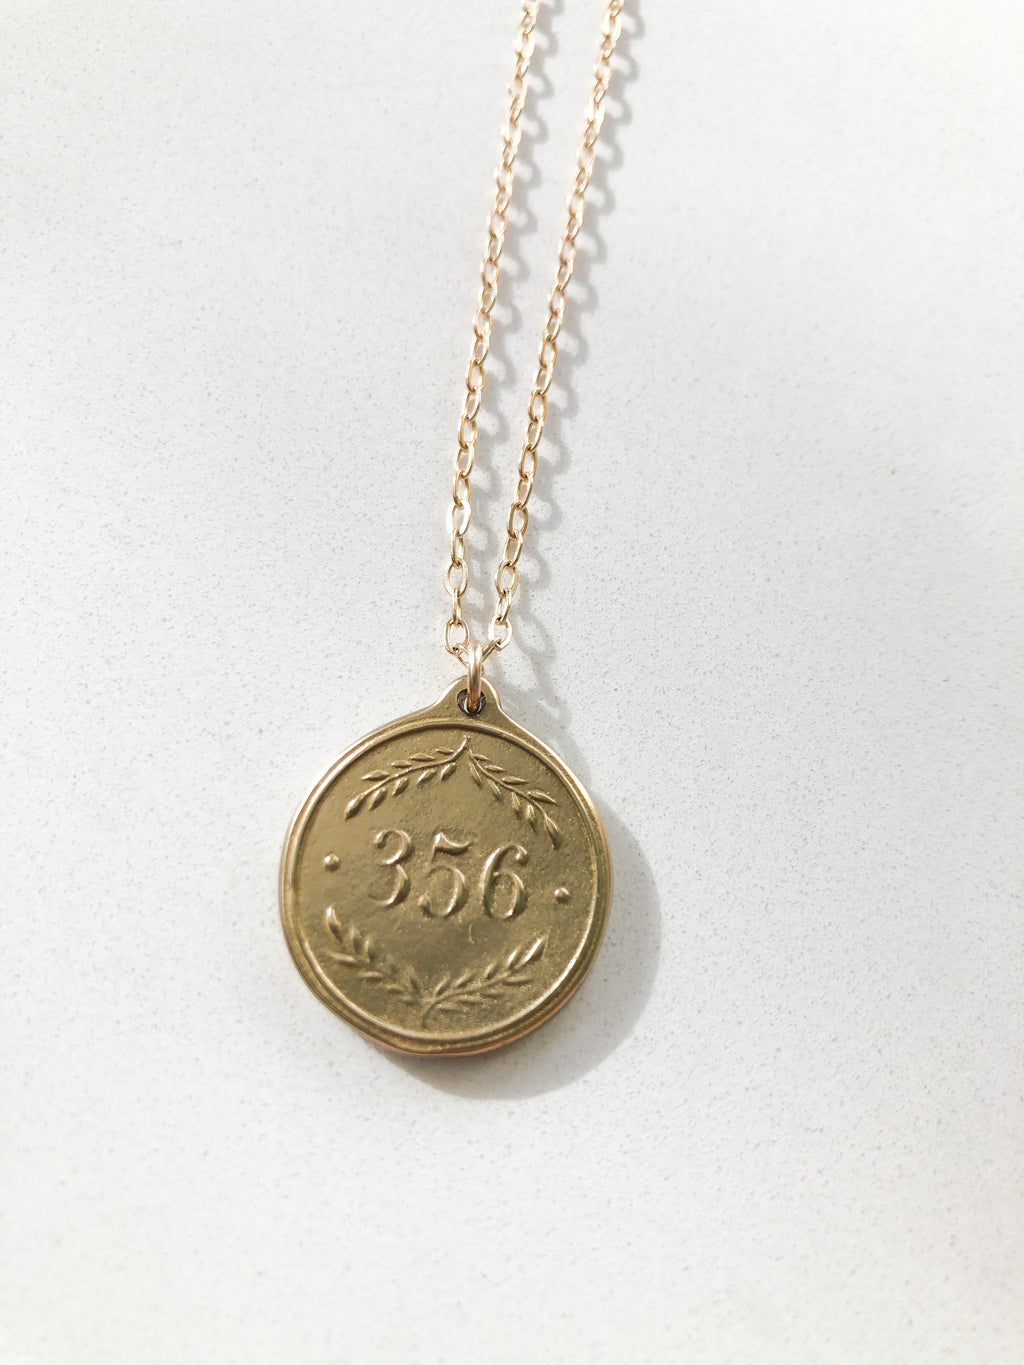 Short Pendant Necklace Proverbs 3:5-6